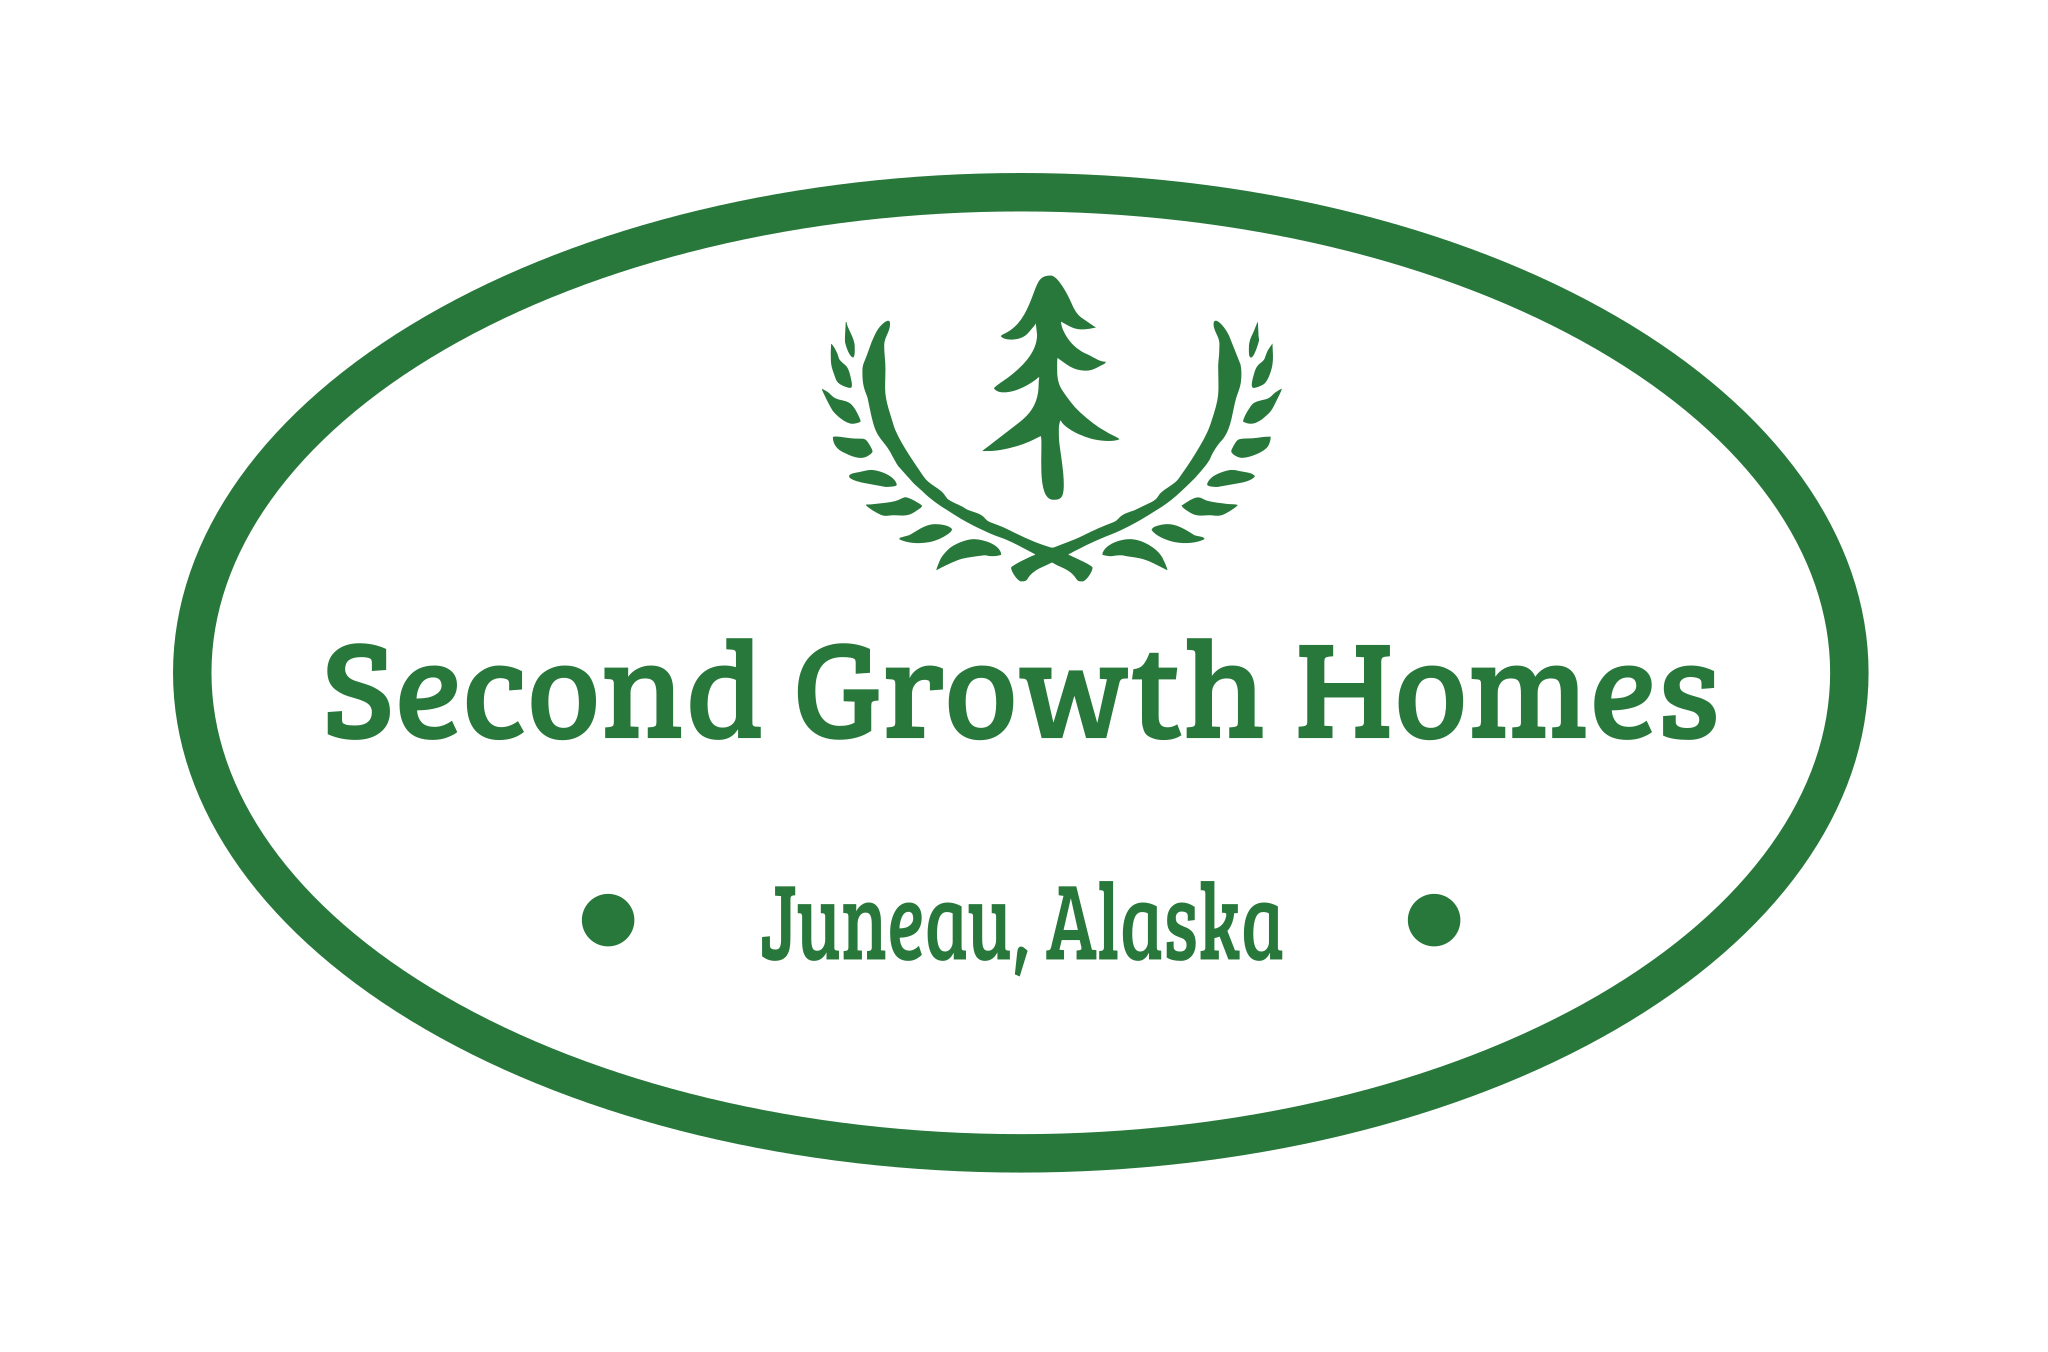 Second Growth Homes